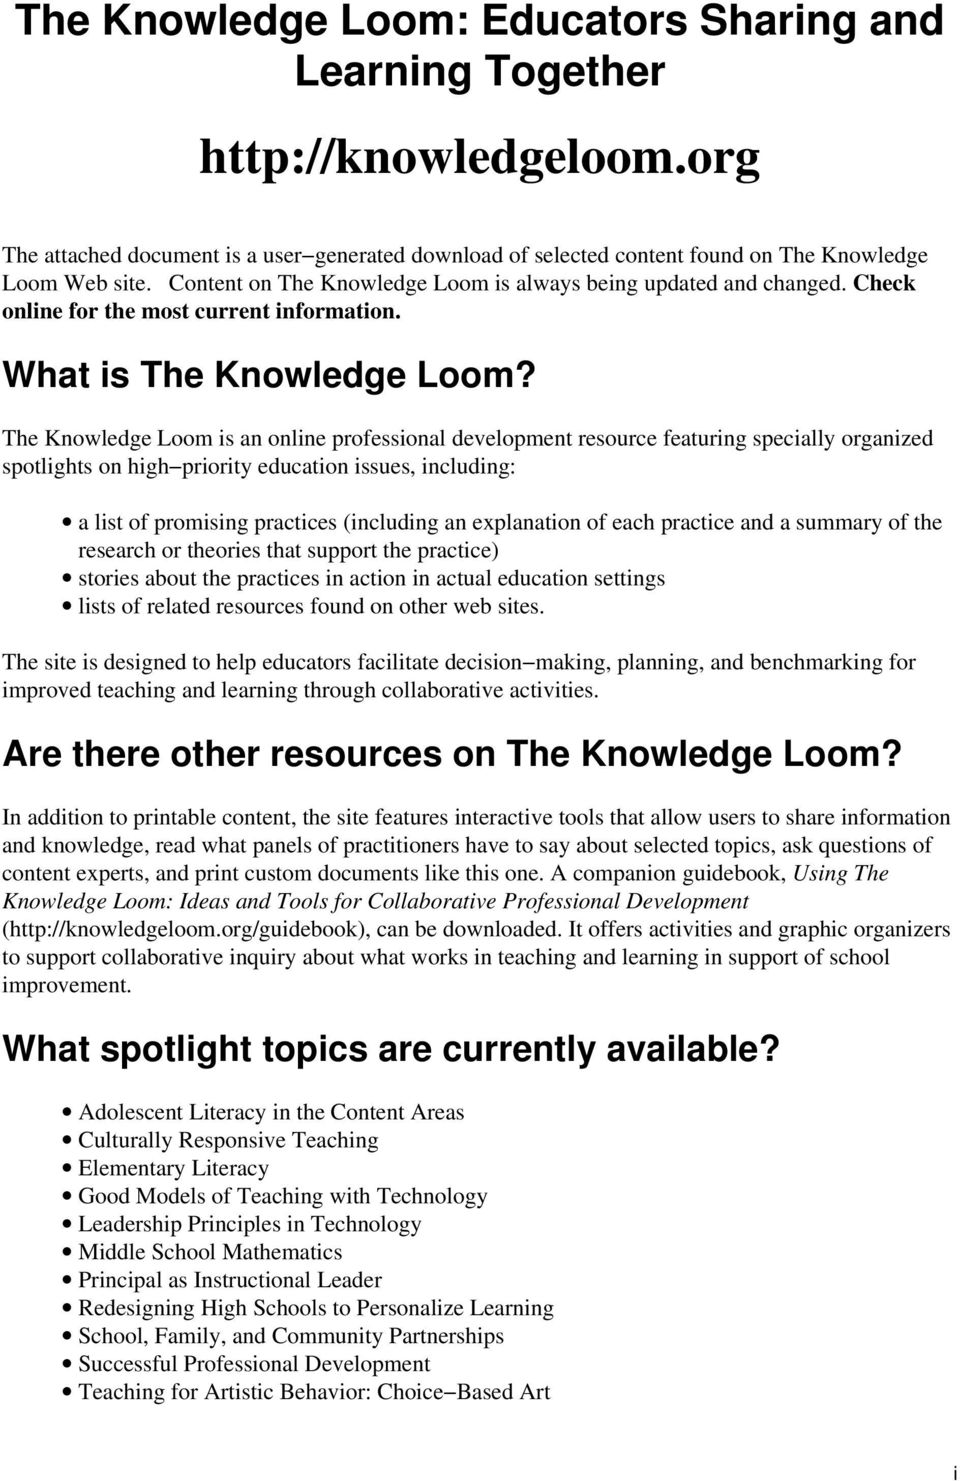 The Knowledge Loom is an online professional development resource featuring specially organized spotlights on high priority education issues, including: a list of promising practices (including an